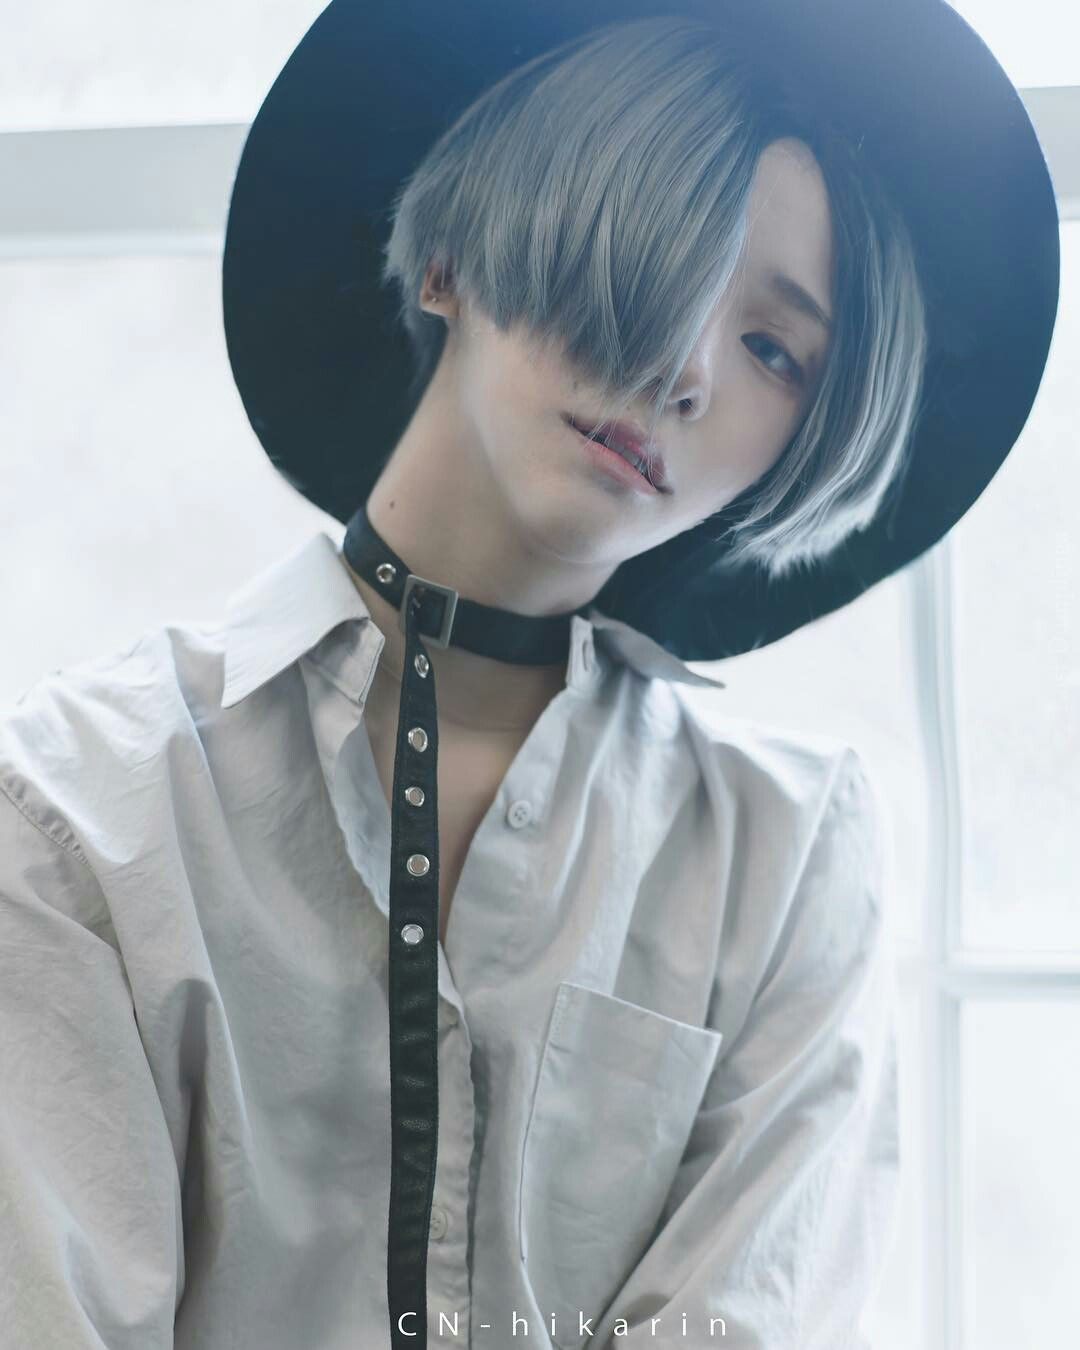 Ulzzang boy hairstyle pin by serena on boy  pinterest  cosplay ulzzang and cosplay boy